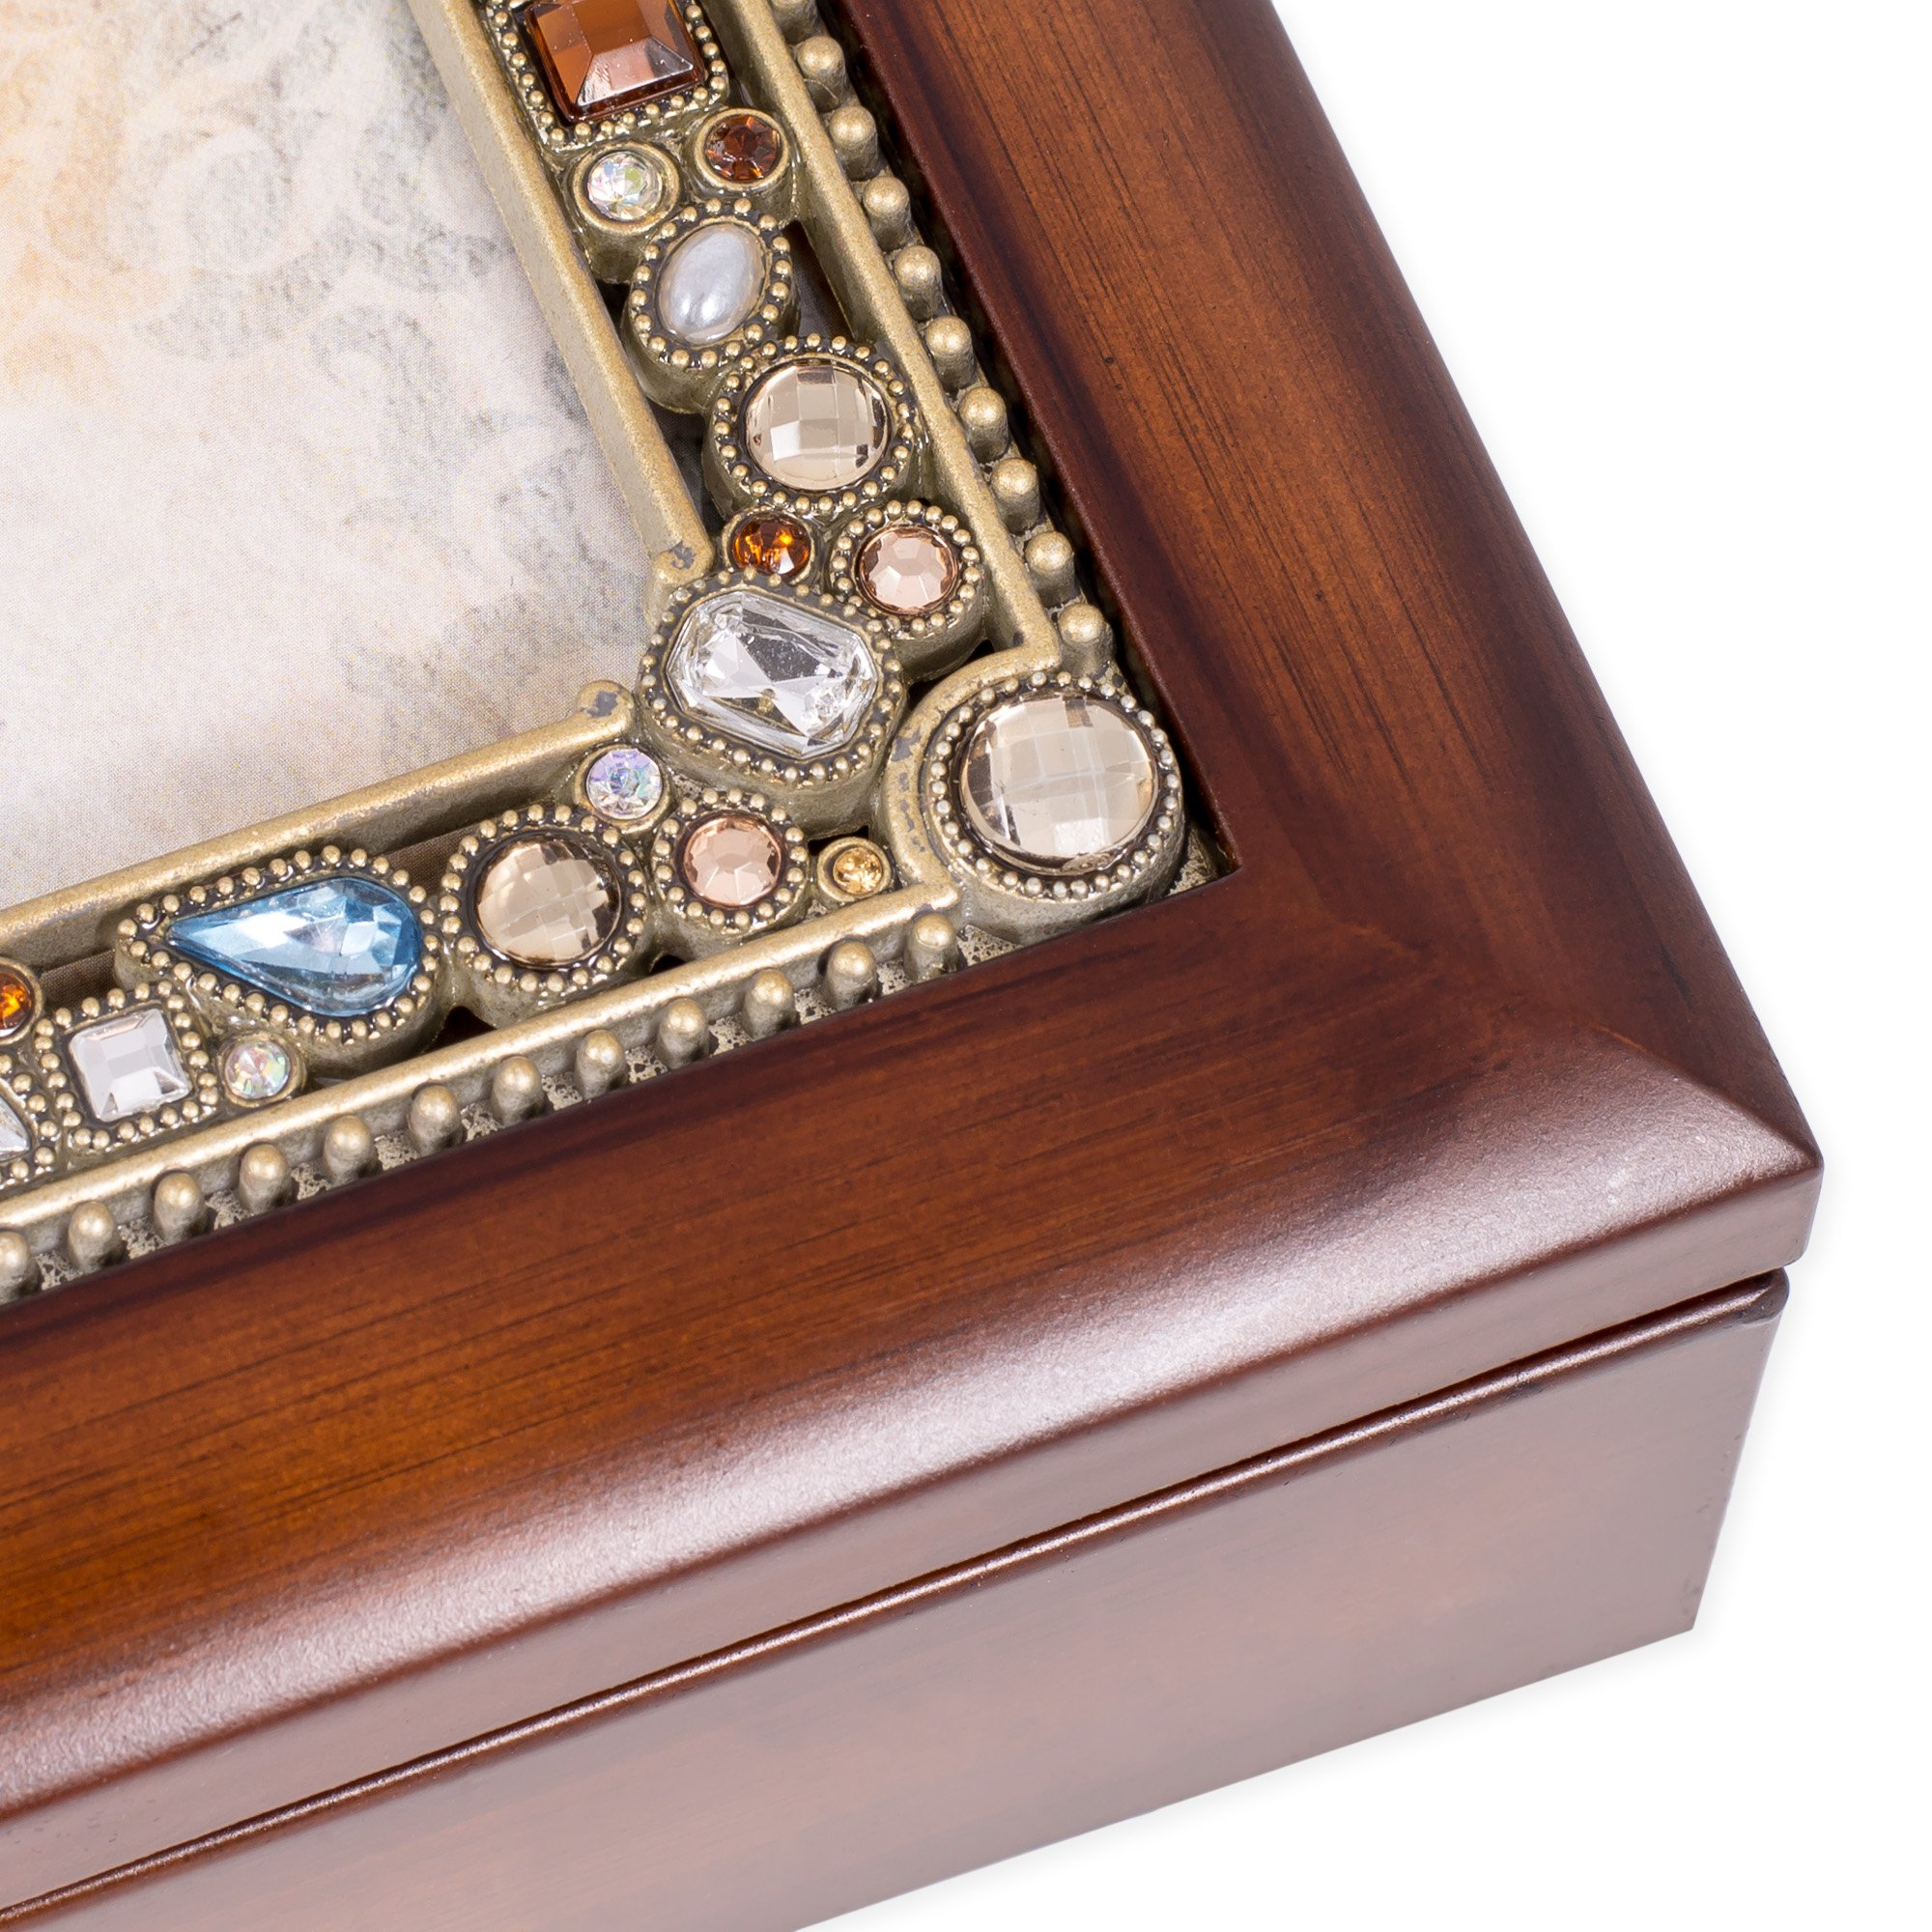 Friendship Life's Gifts Jewel Musical Music Jewelry Box with Dark Wood Finish Plays That's What Friends Are For by Cottage Garden (Image #3)